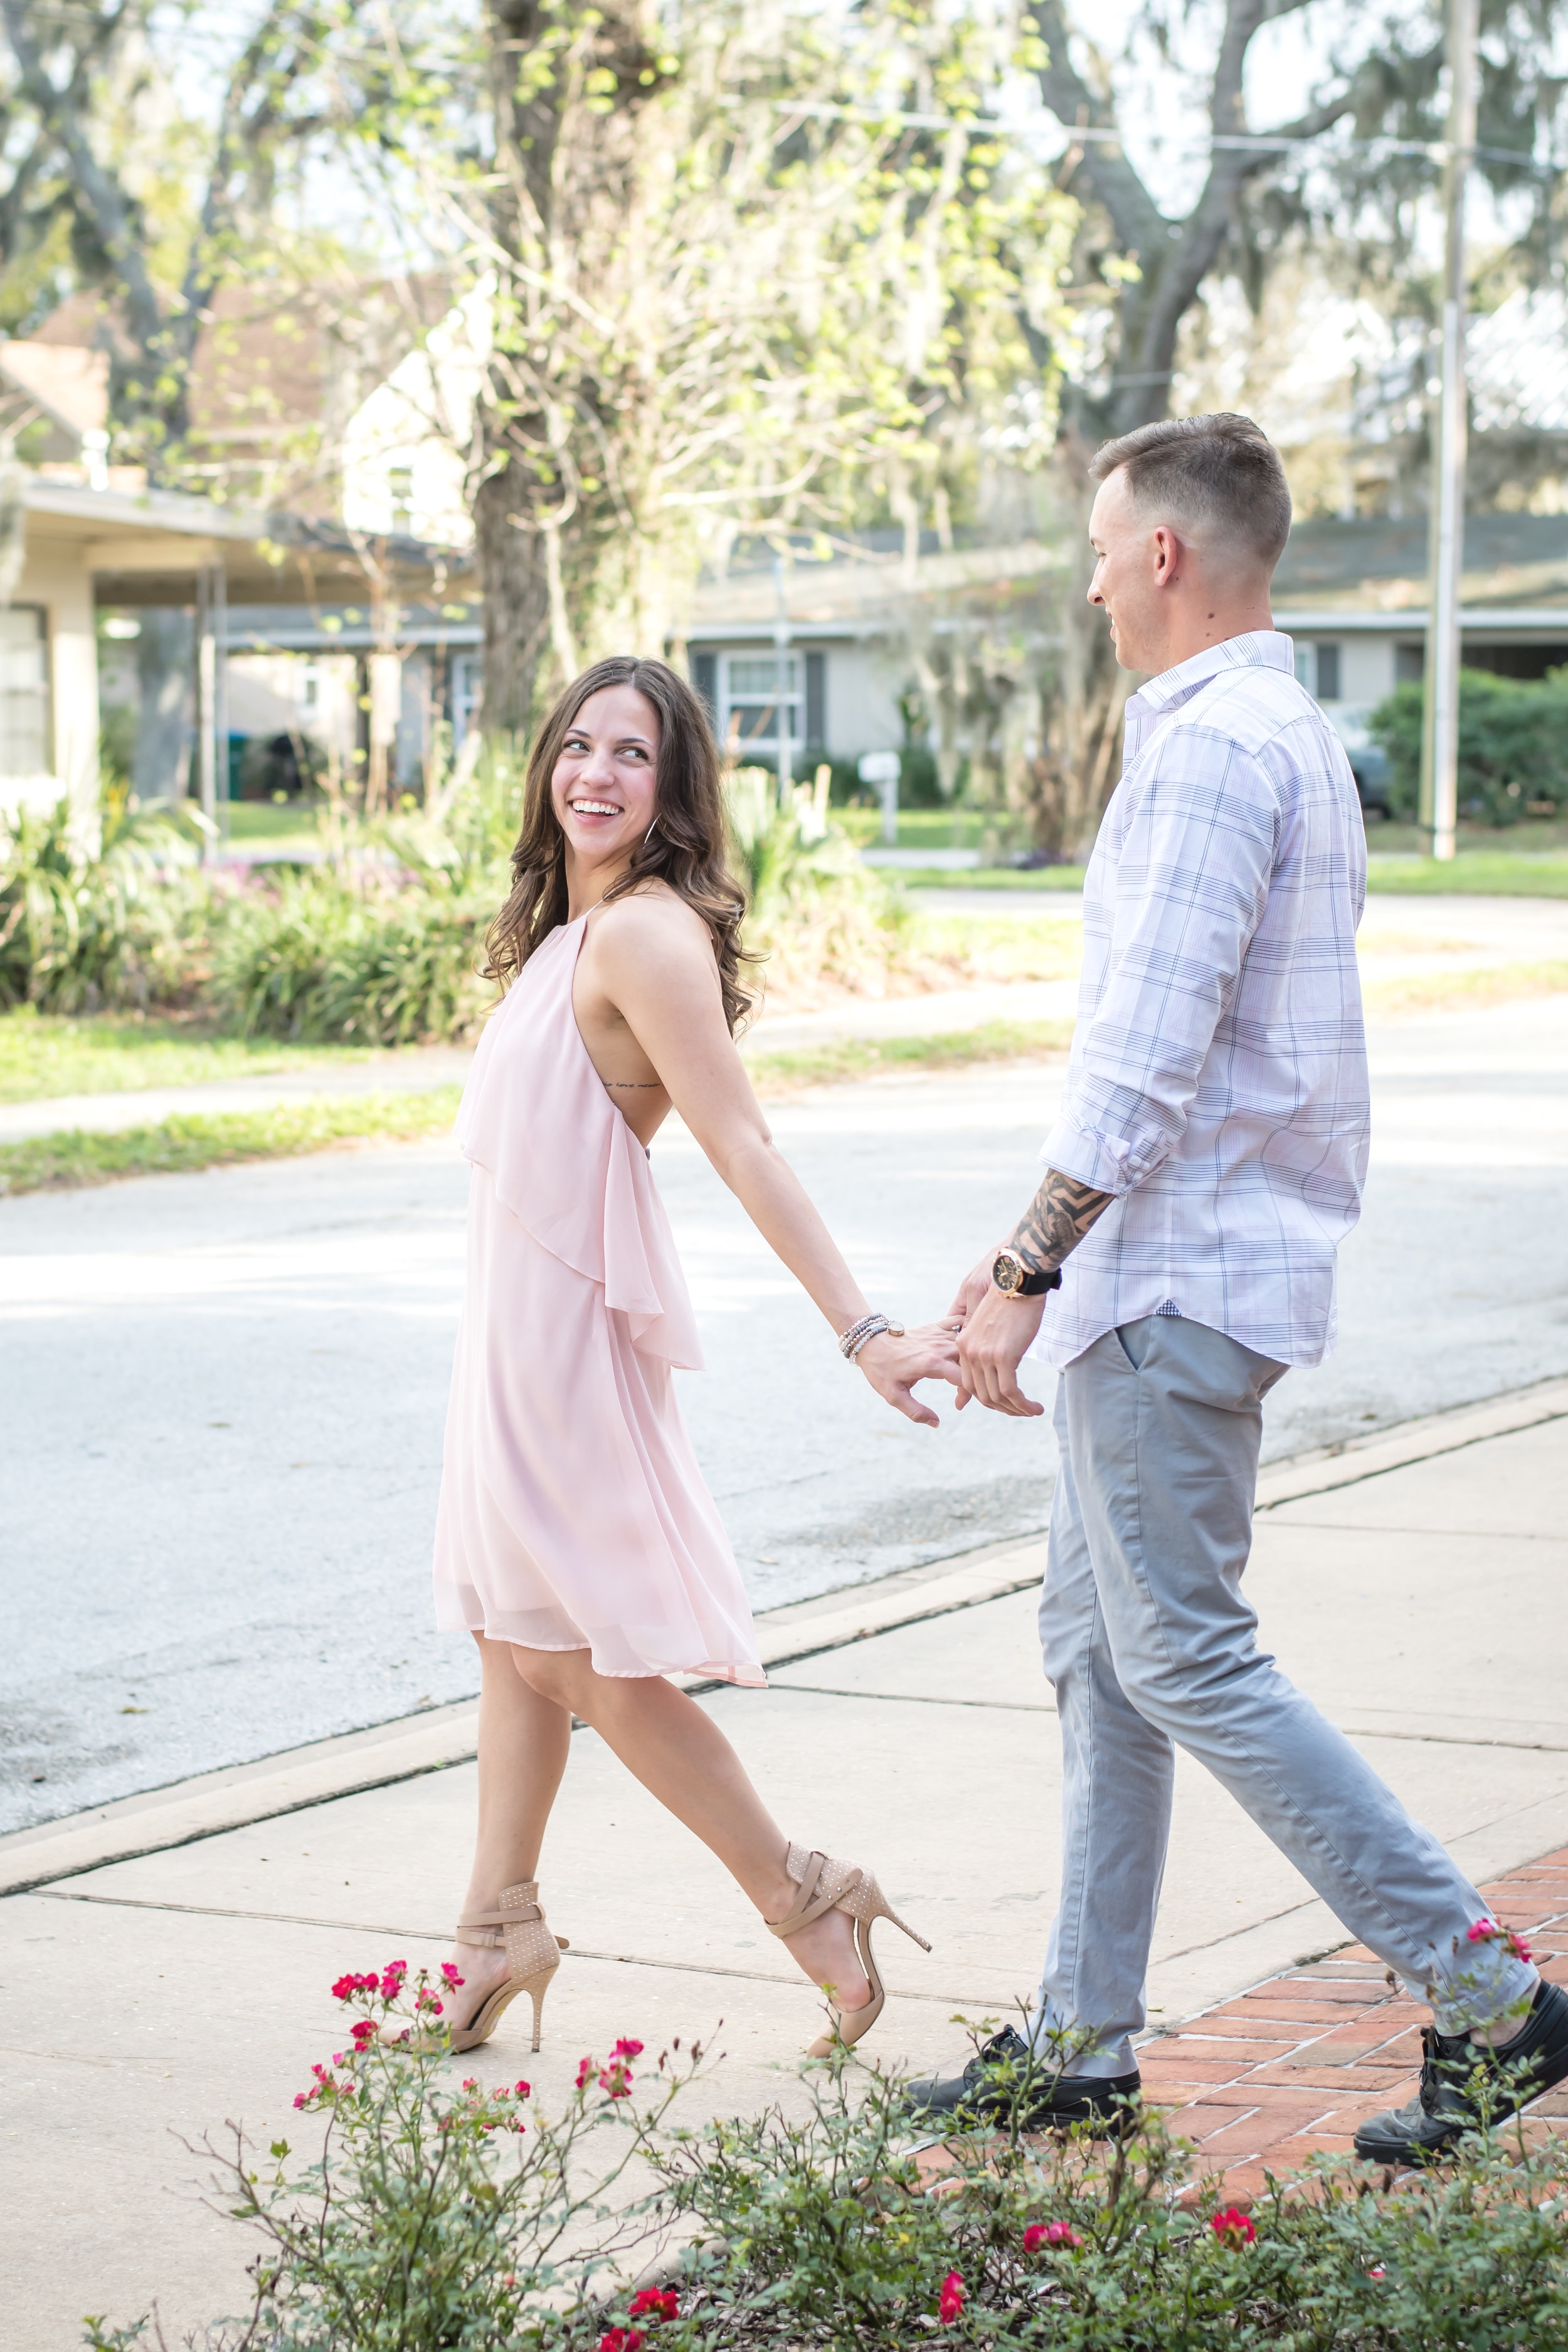 longwood-engagement-session-orlando-photographer-yanitza-ninett-35.jpg